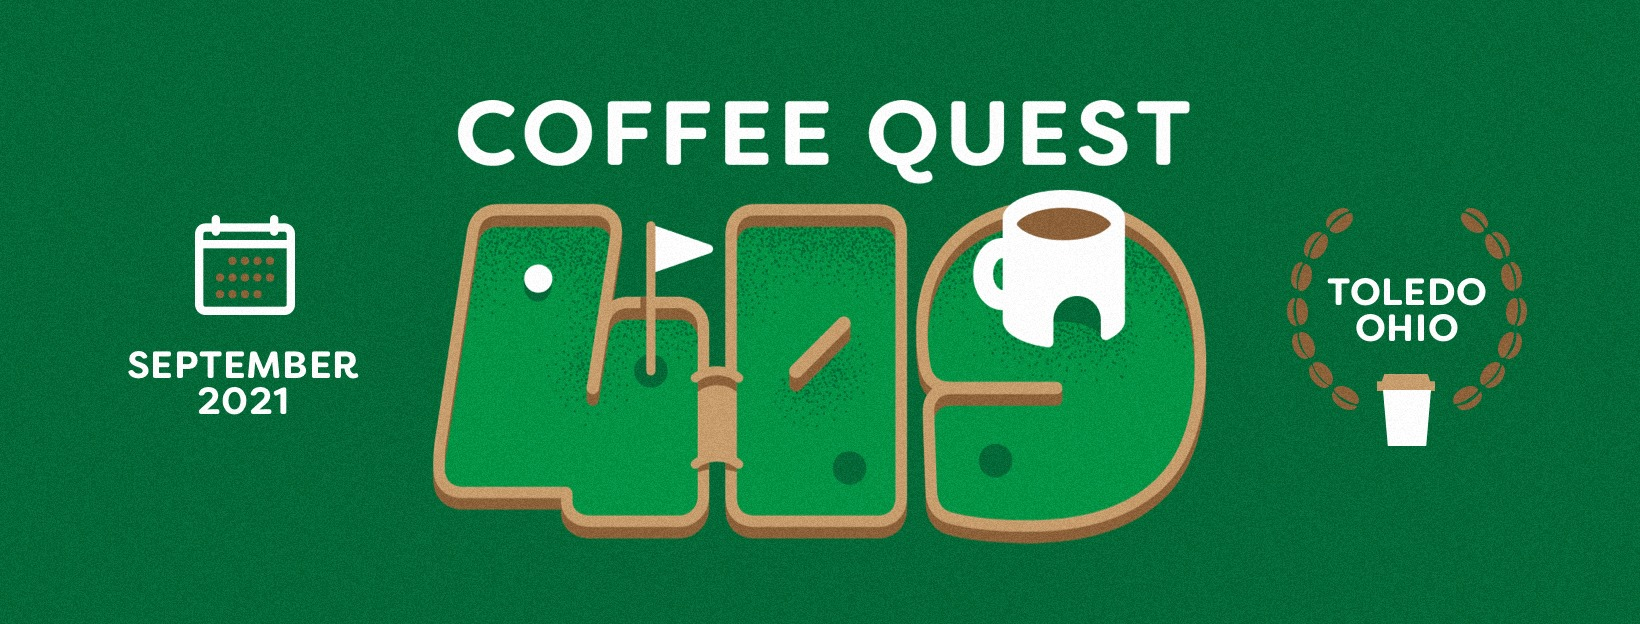 Coffee Quest 419 2021